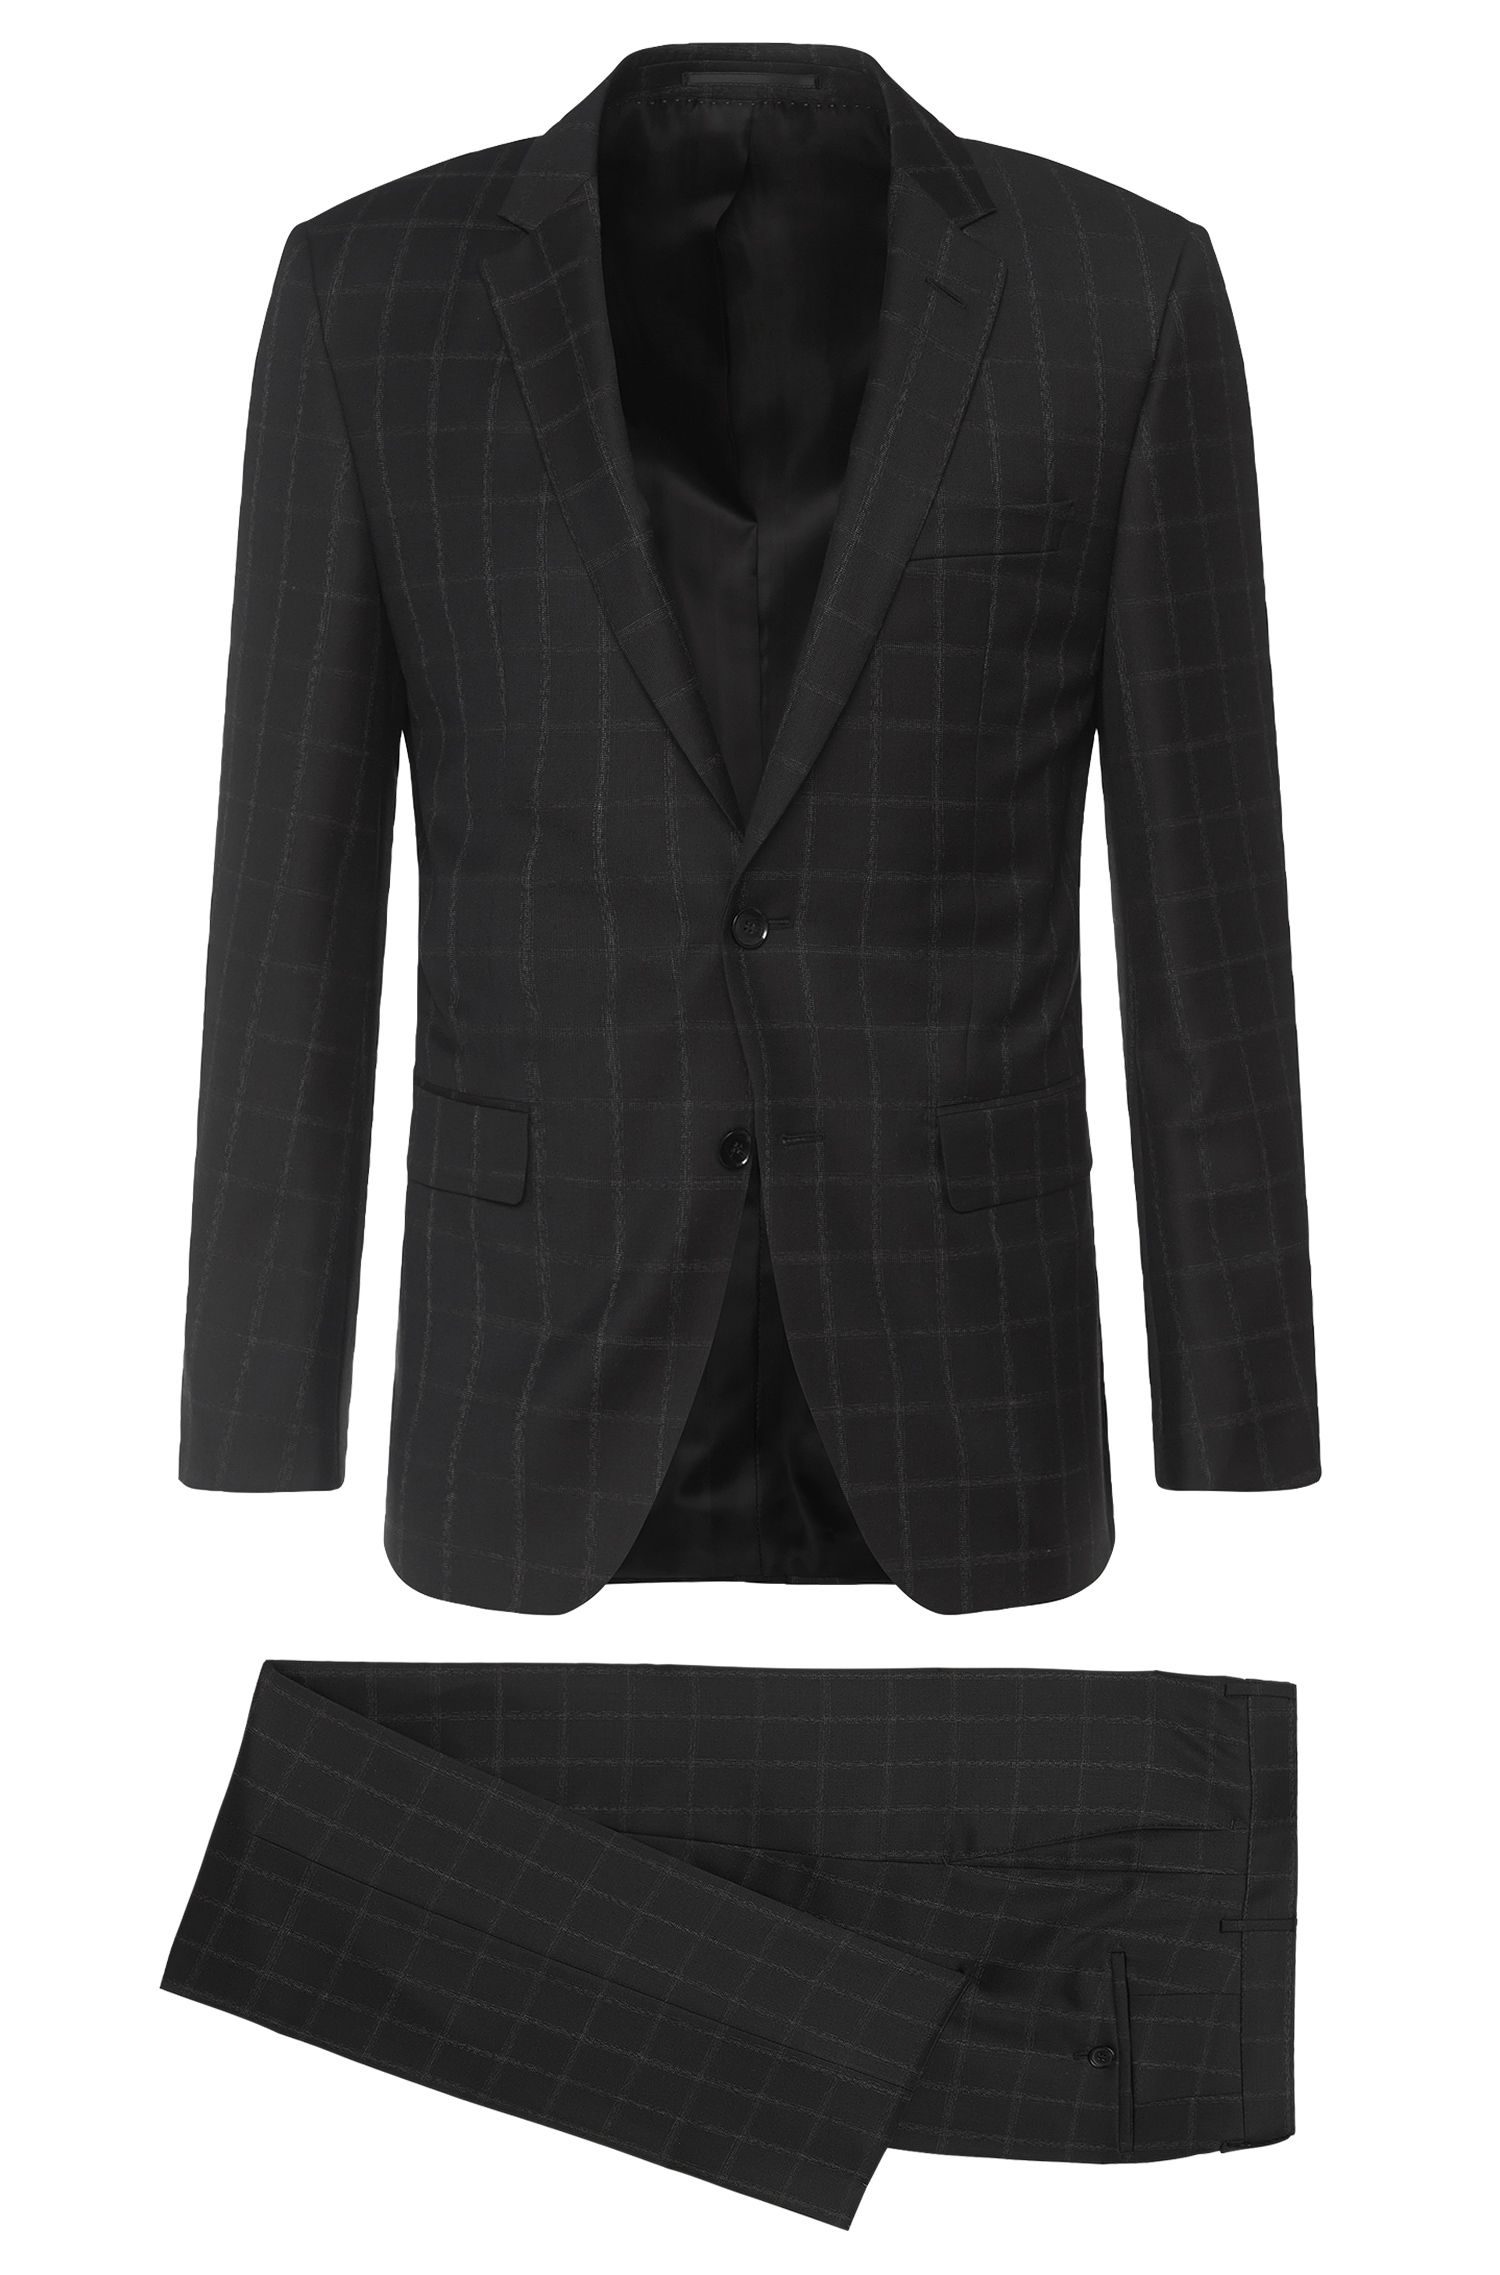 Costume Slim Fit Tailored en laine vierge : « T-Harvers2/Glover1 »